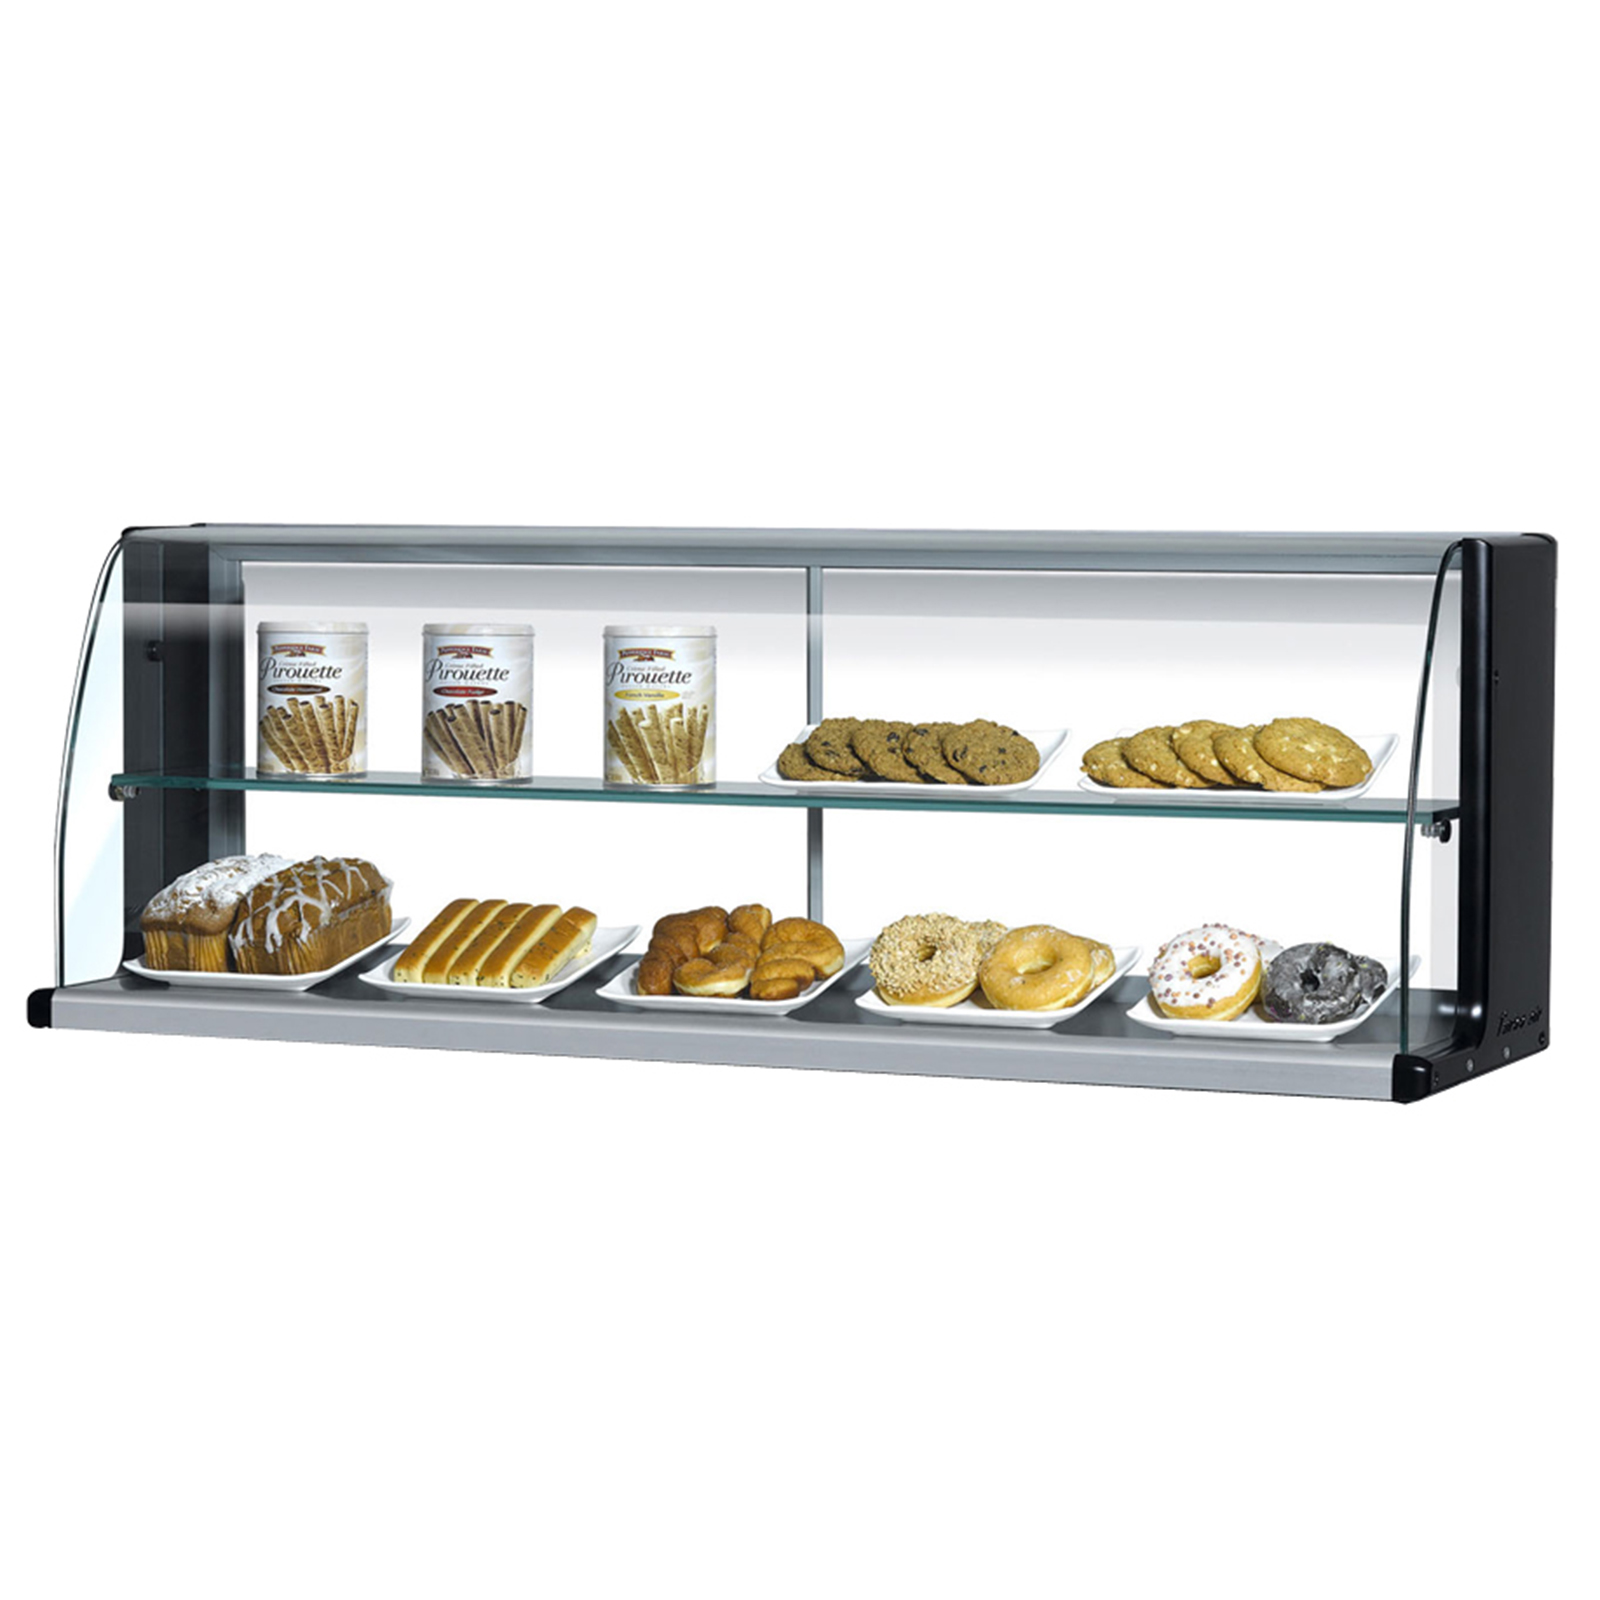 Turbo Air TOMD-75HW display case, non-refrigerated countertop